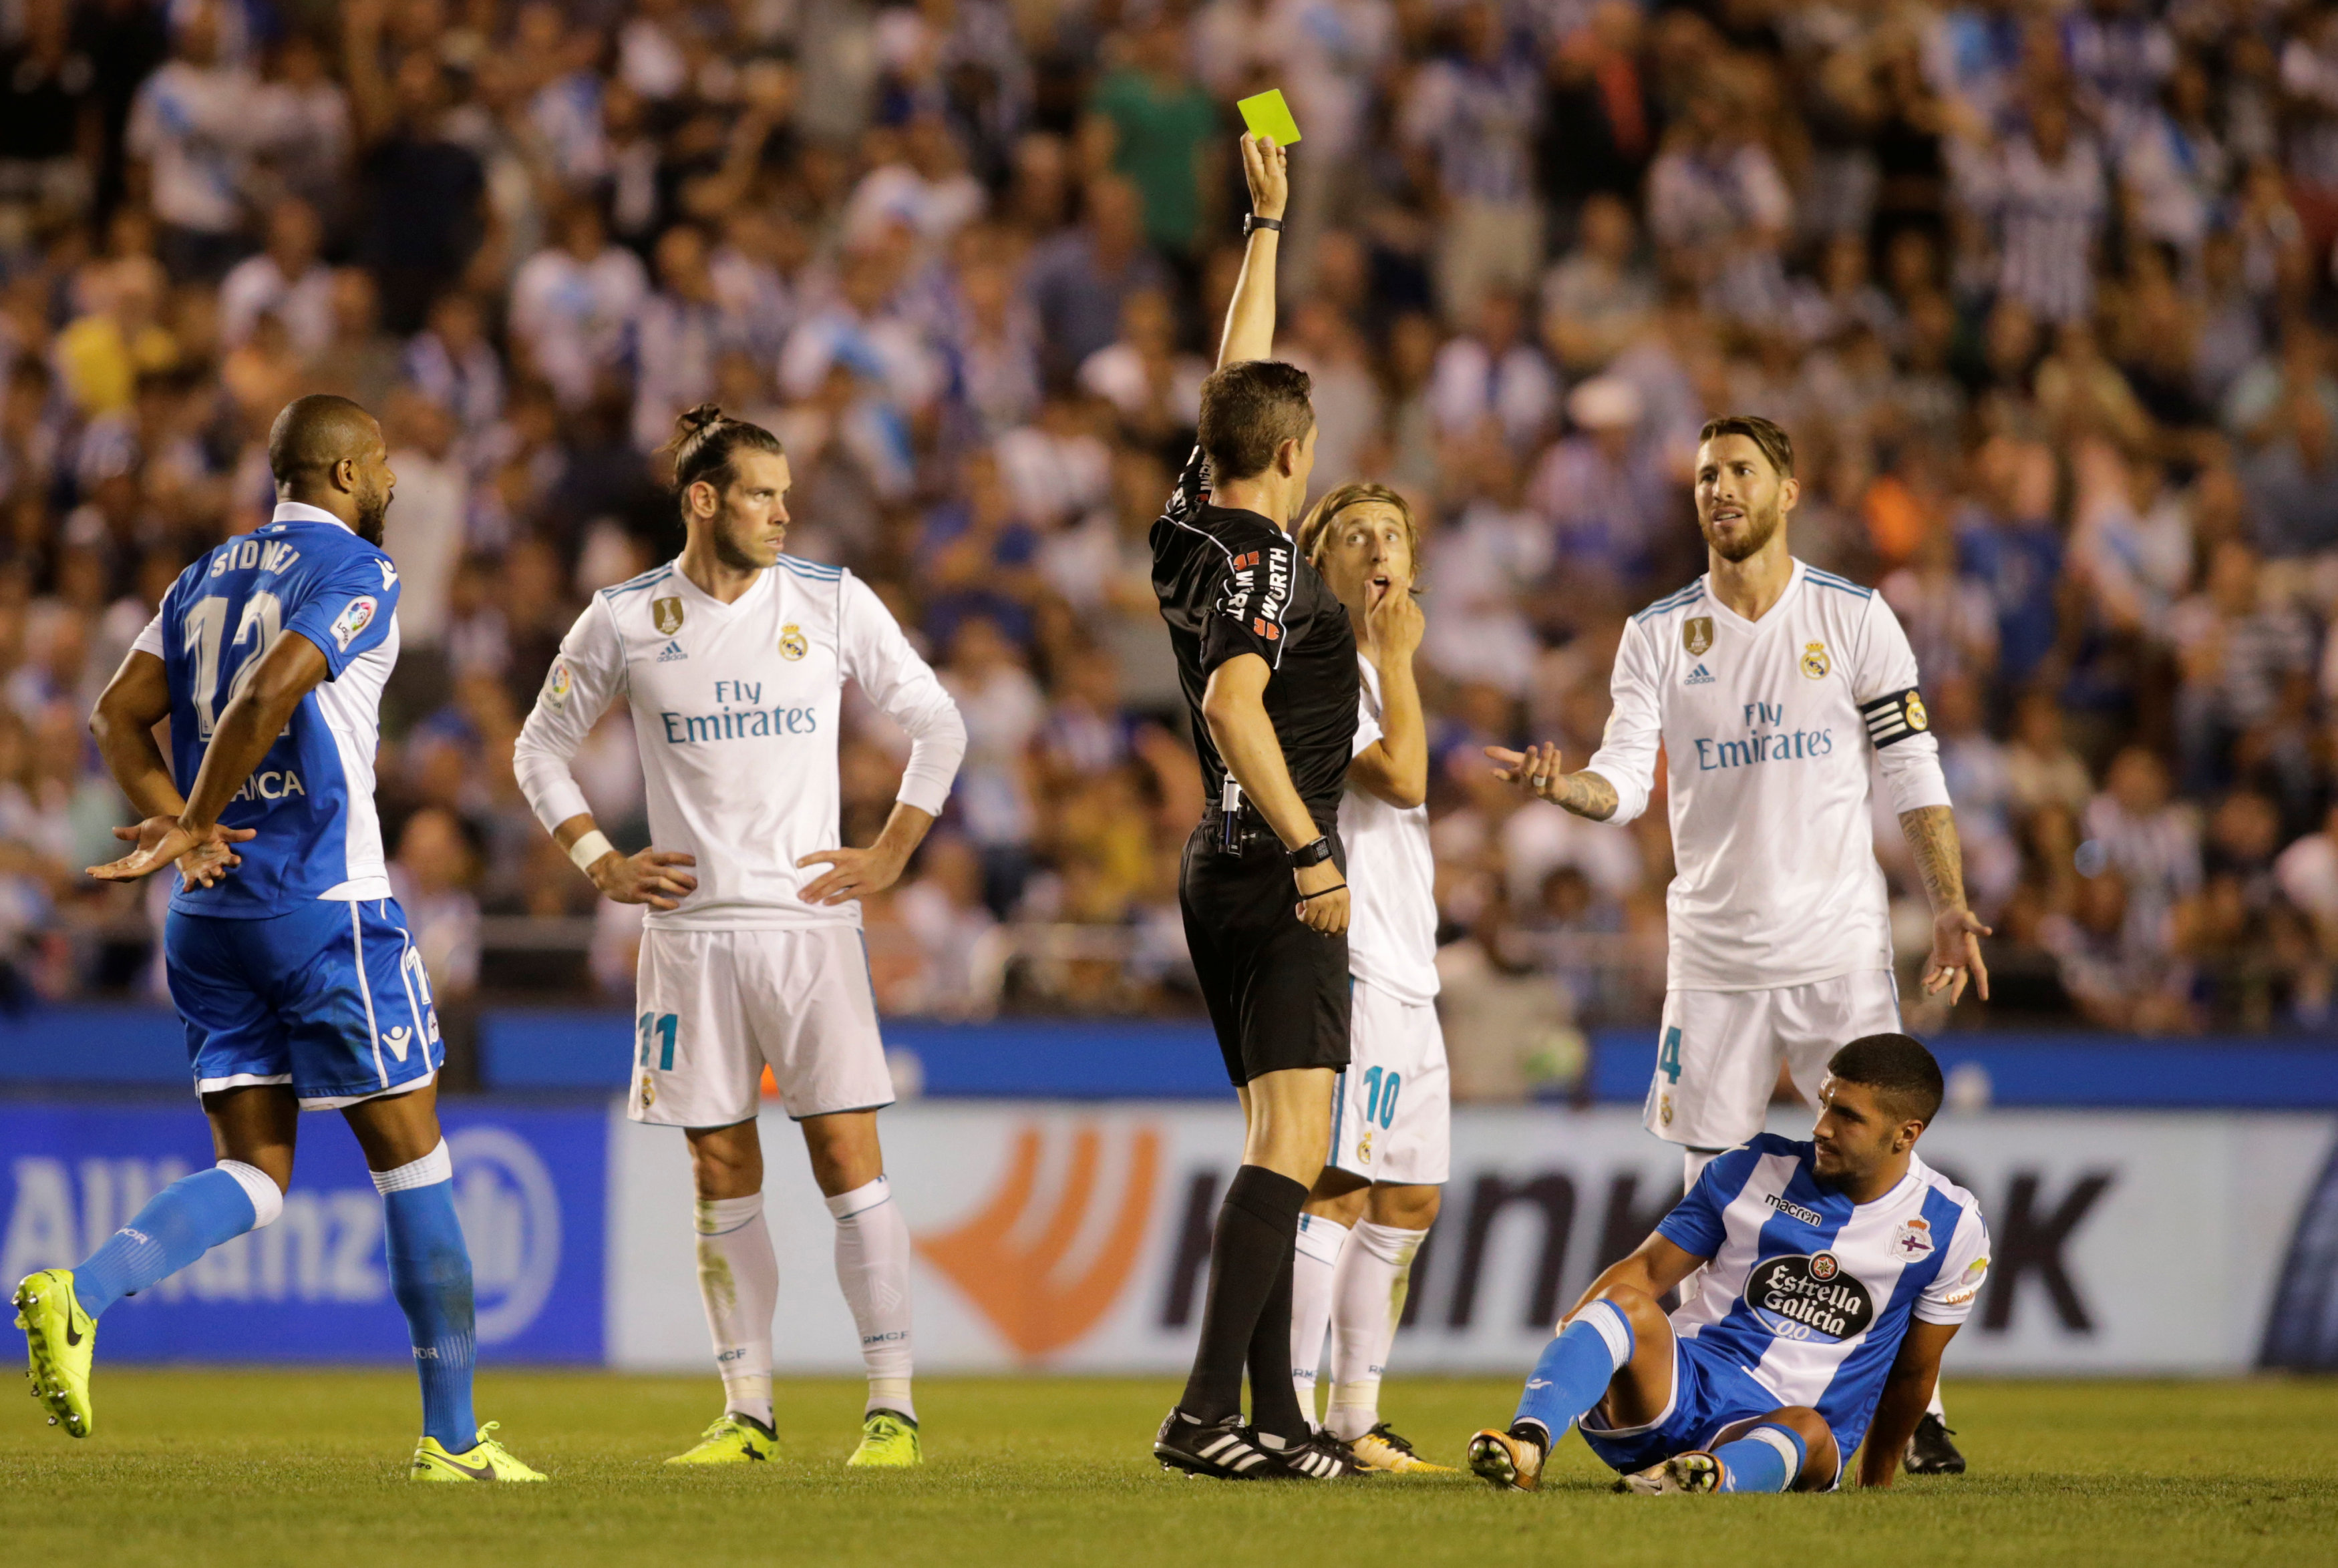 Football: Real Madrid's Ramos asks for more leniency from referees after red card record